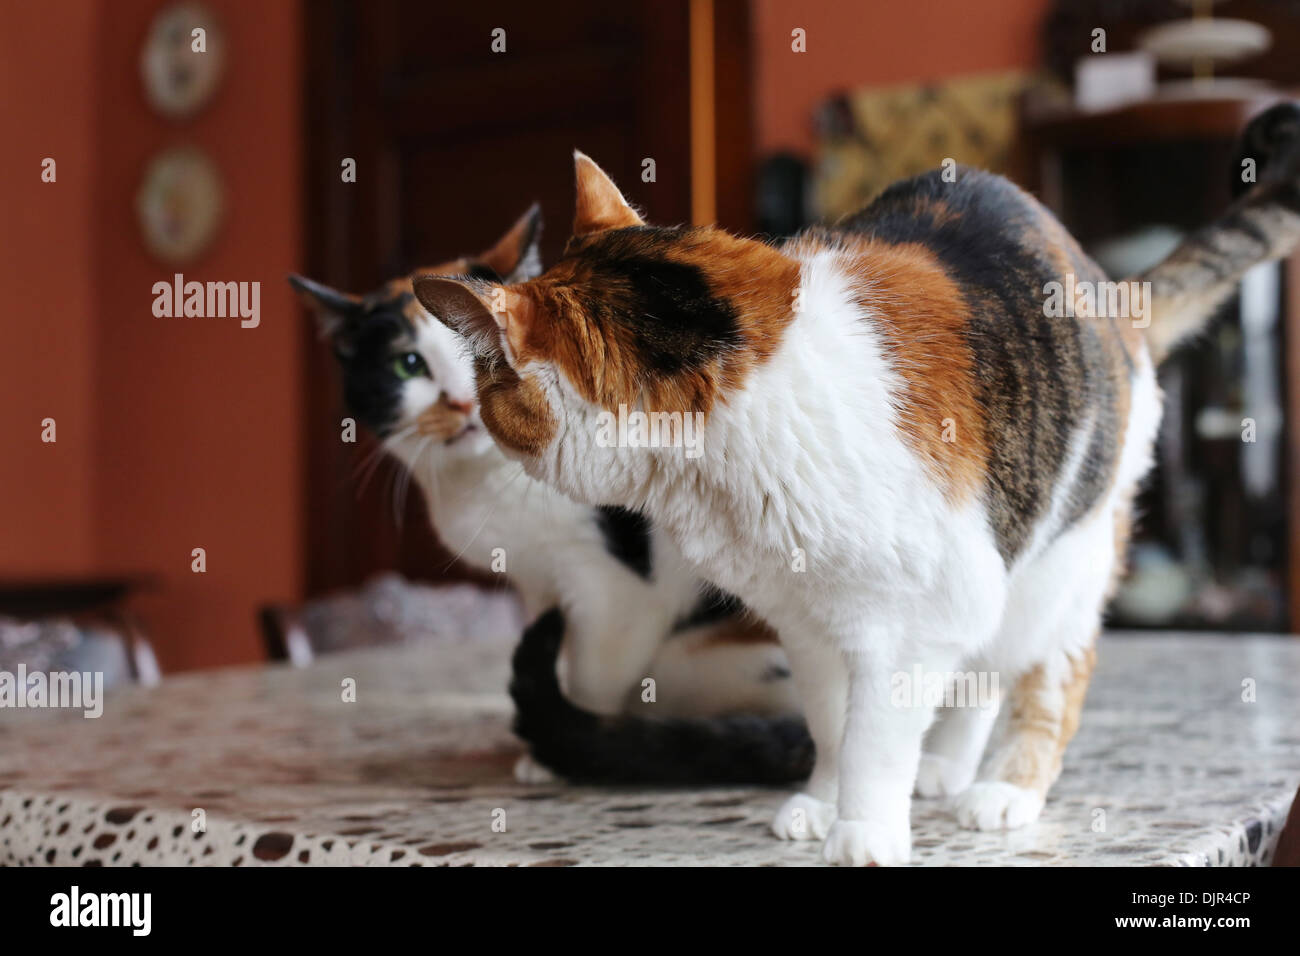 Two calico cats looking at each other. - Stock Image